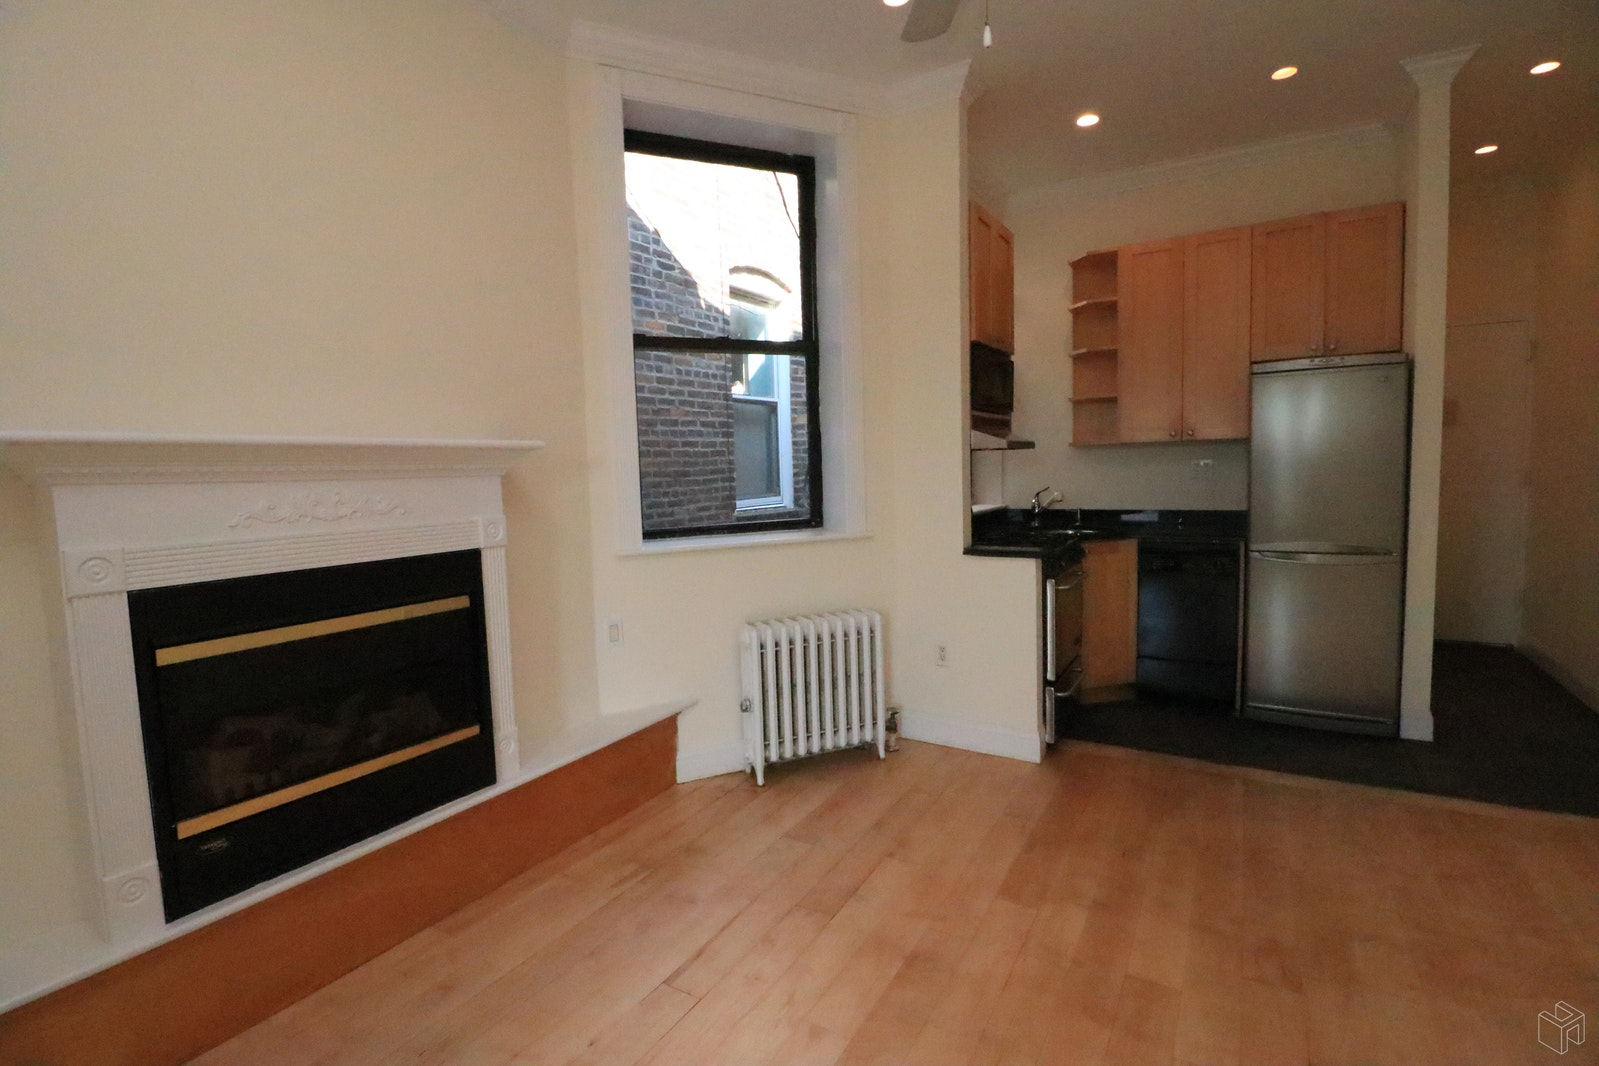 73 East 3rd Street D1, East Village, NYC, 10003, Price Not Disclosed, Rented Property, Halstead Real Estate, Photo 3